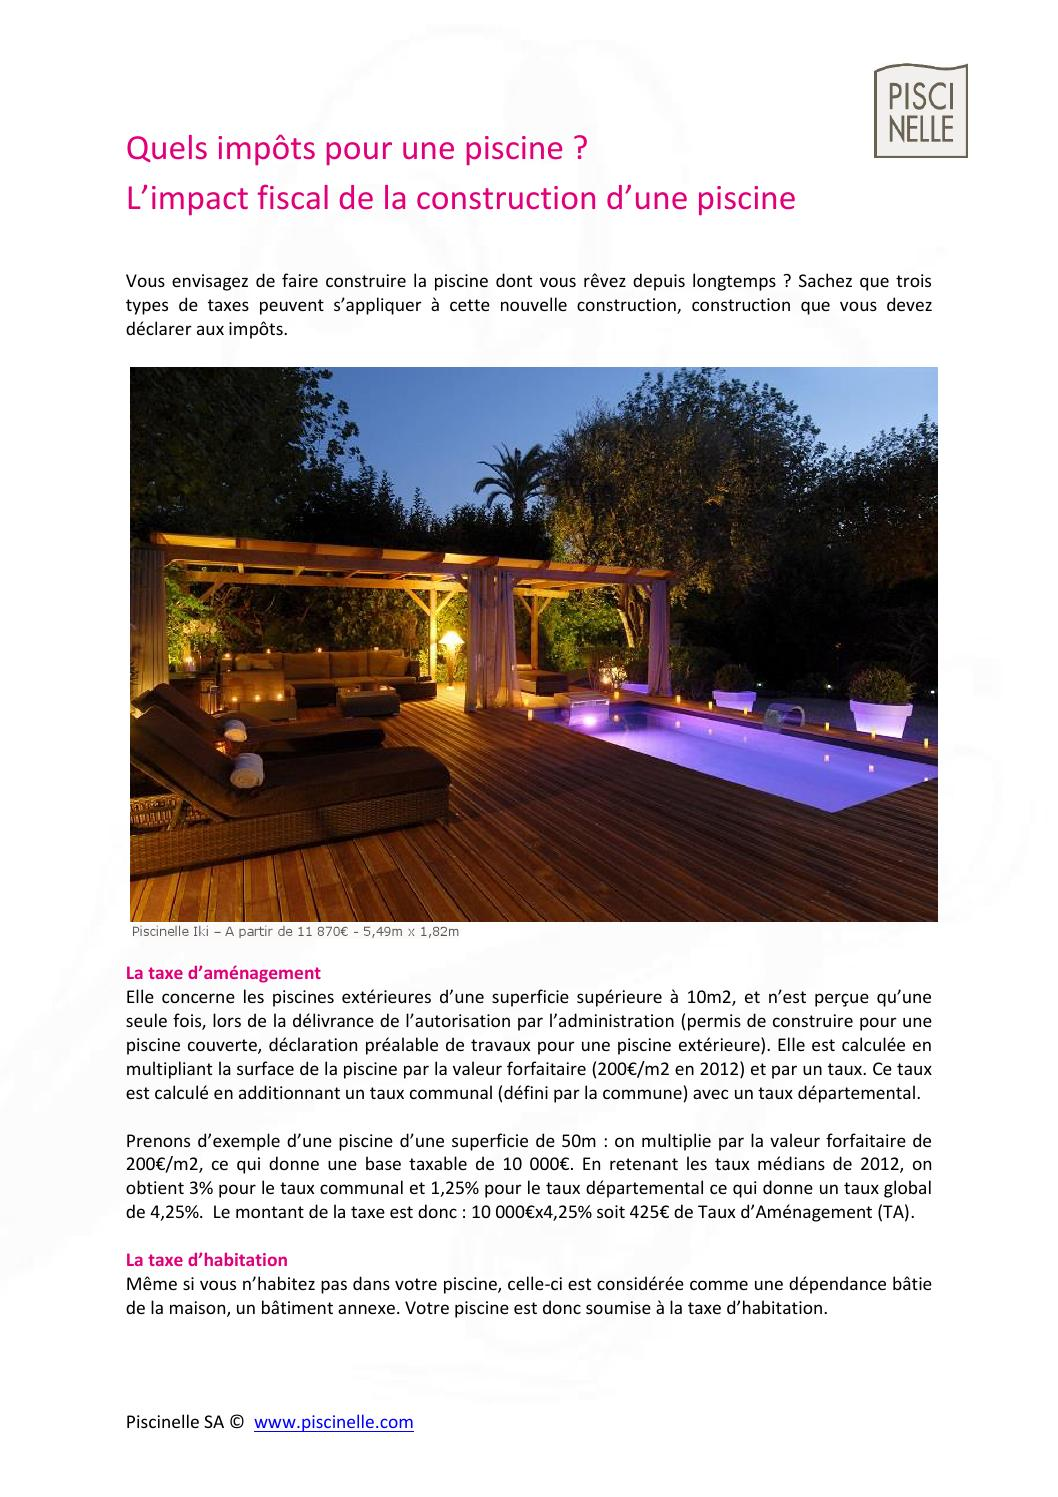 Guide de la fiscalit d 39 une piscine by piscinelle issuu for Construction piscine declaration